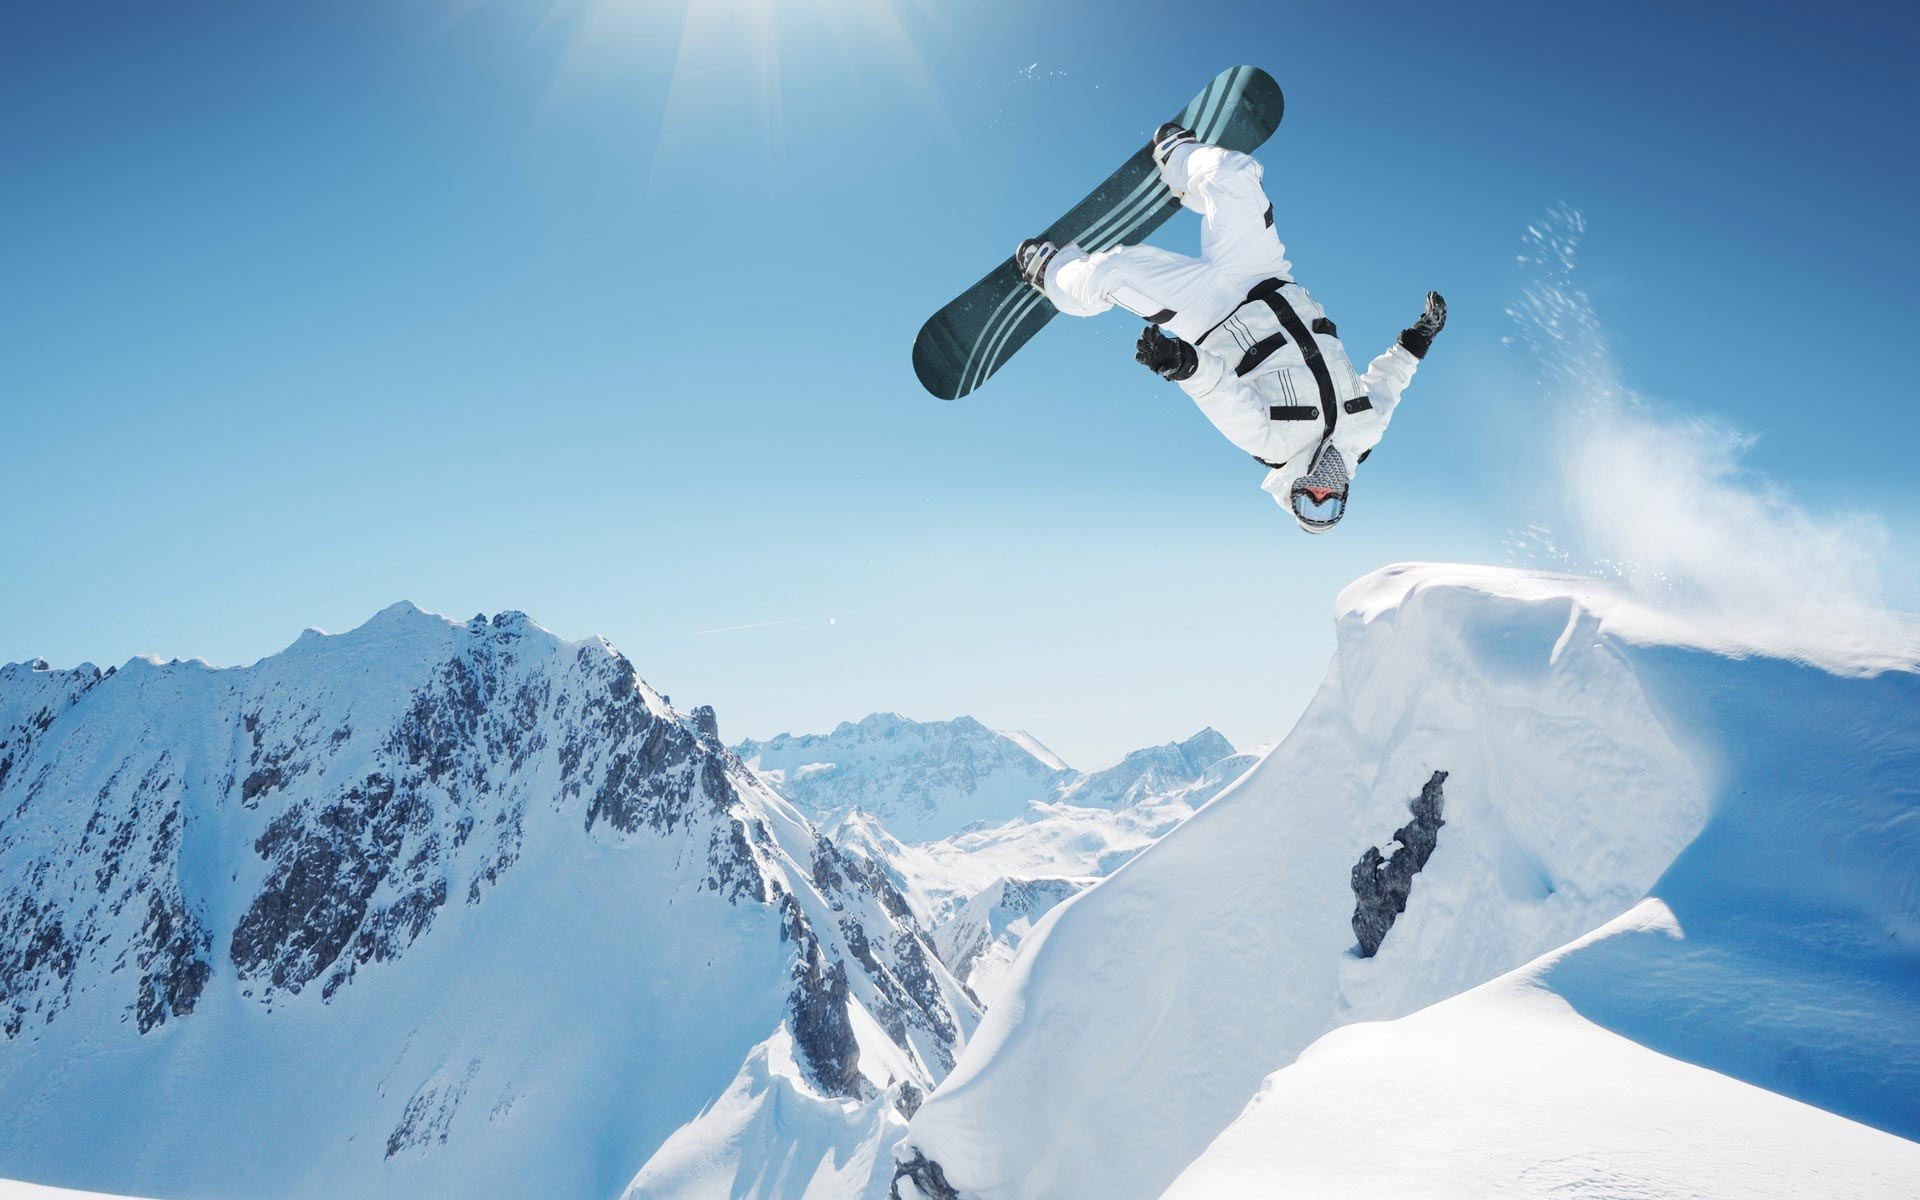 Snowboarding Wallpaper HD